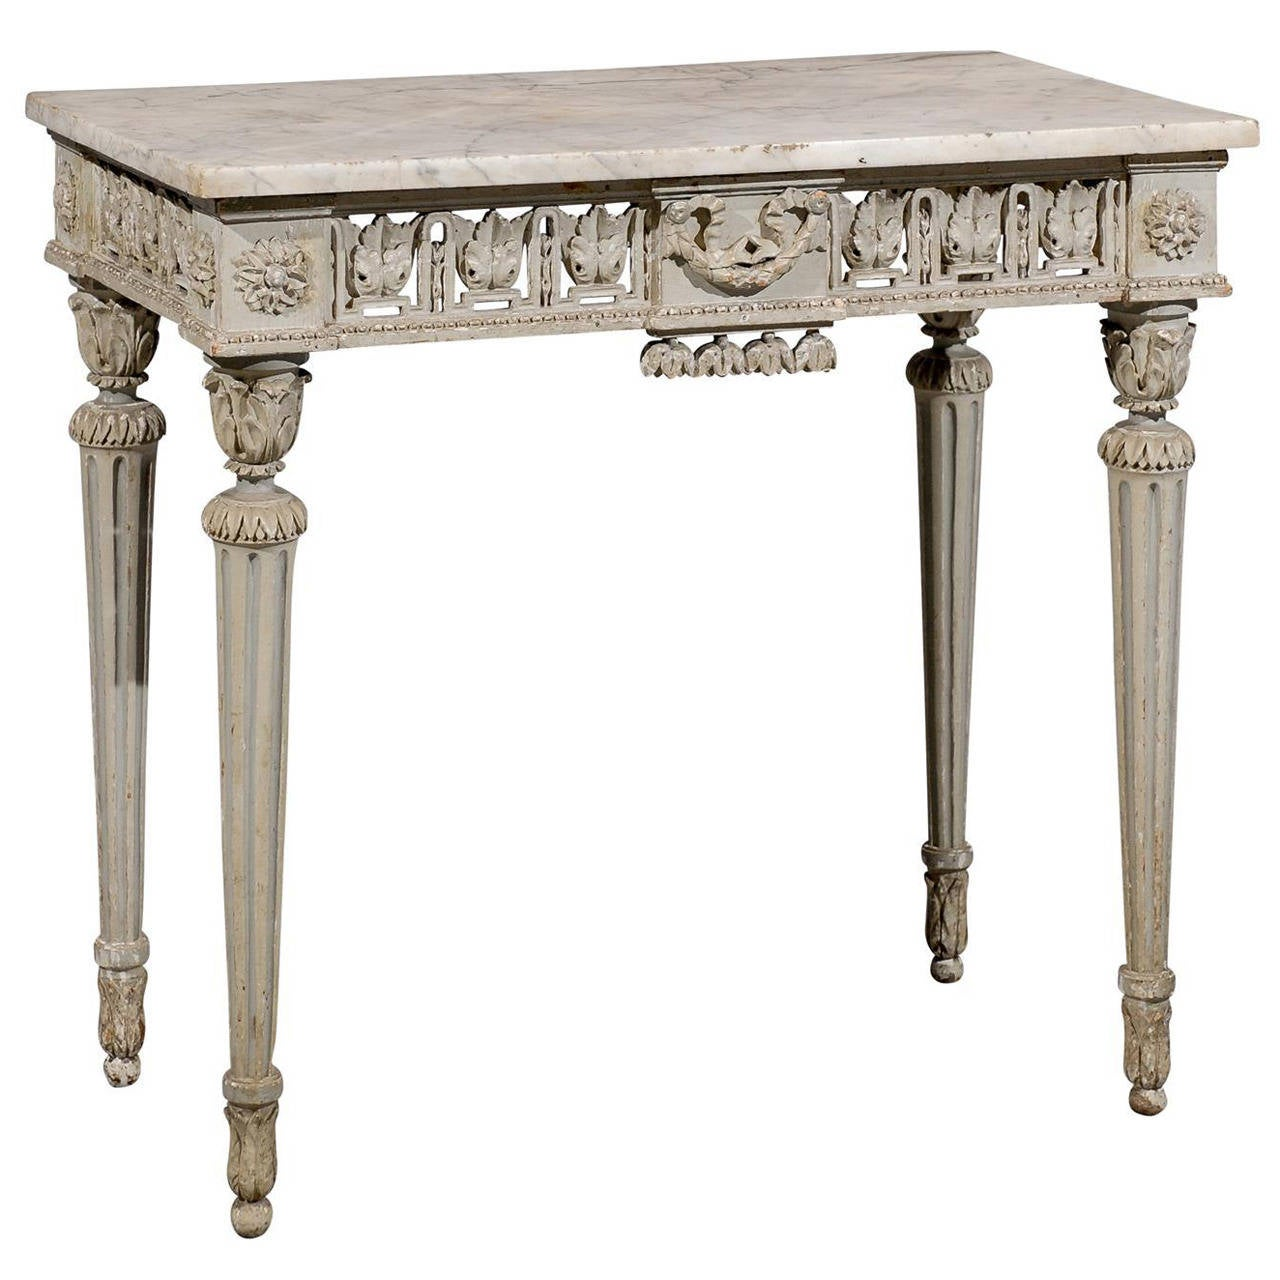 18th century french louis xvi painted console table with marble top for sale at 1stdibs. Black Bedroom Furniture Sets. Home Design Ideas